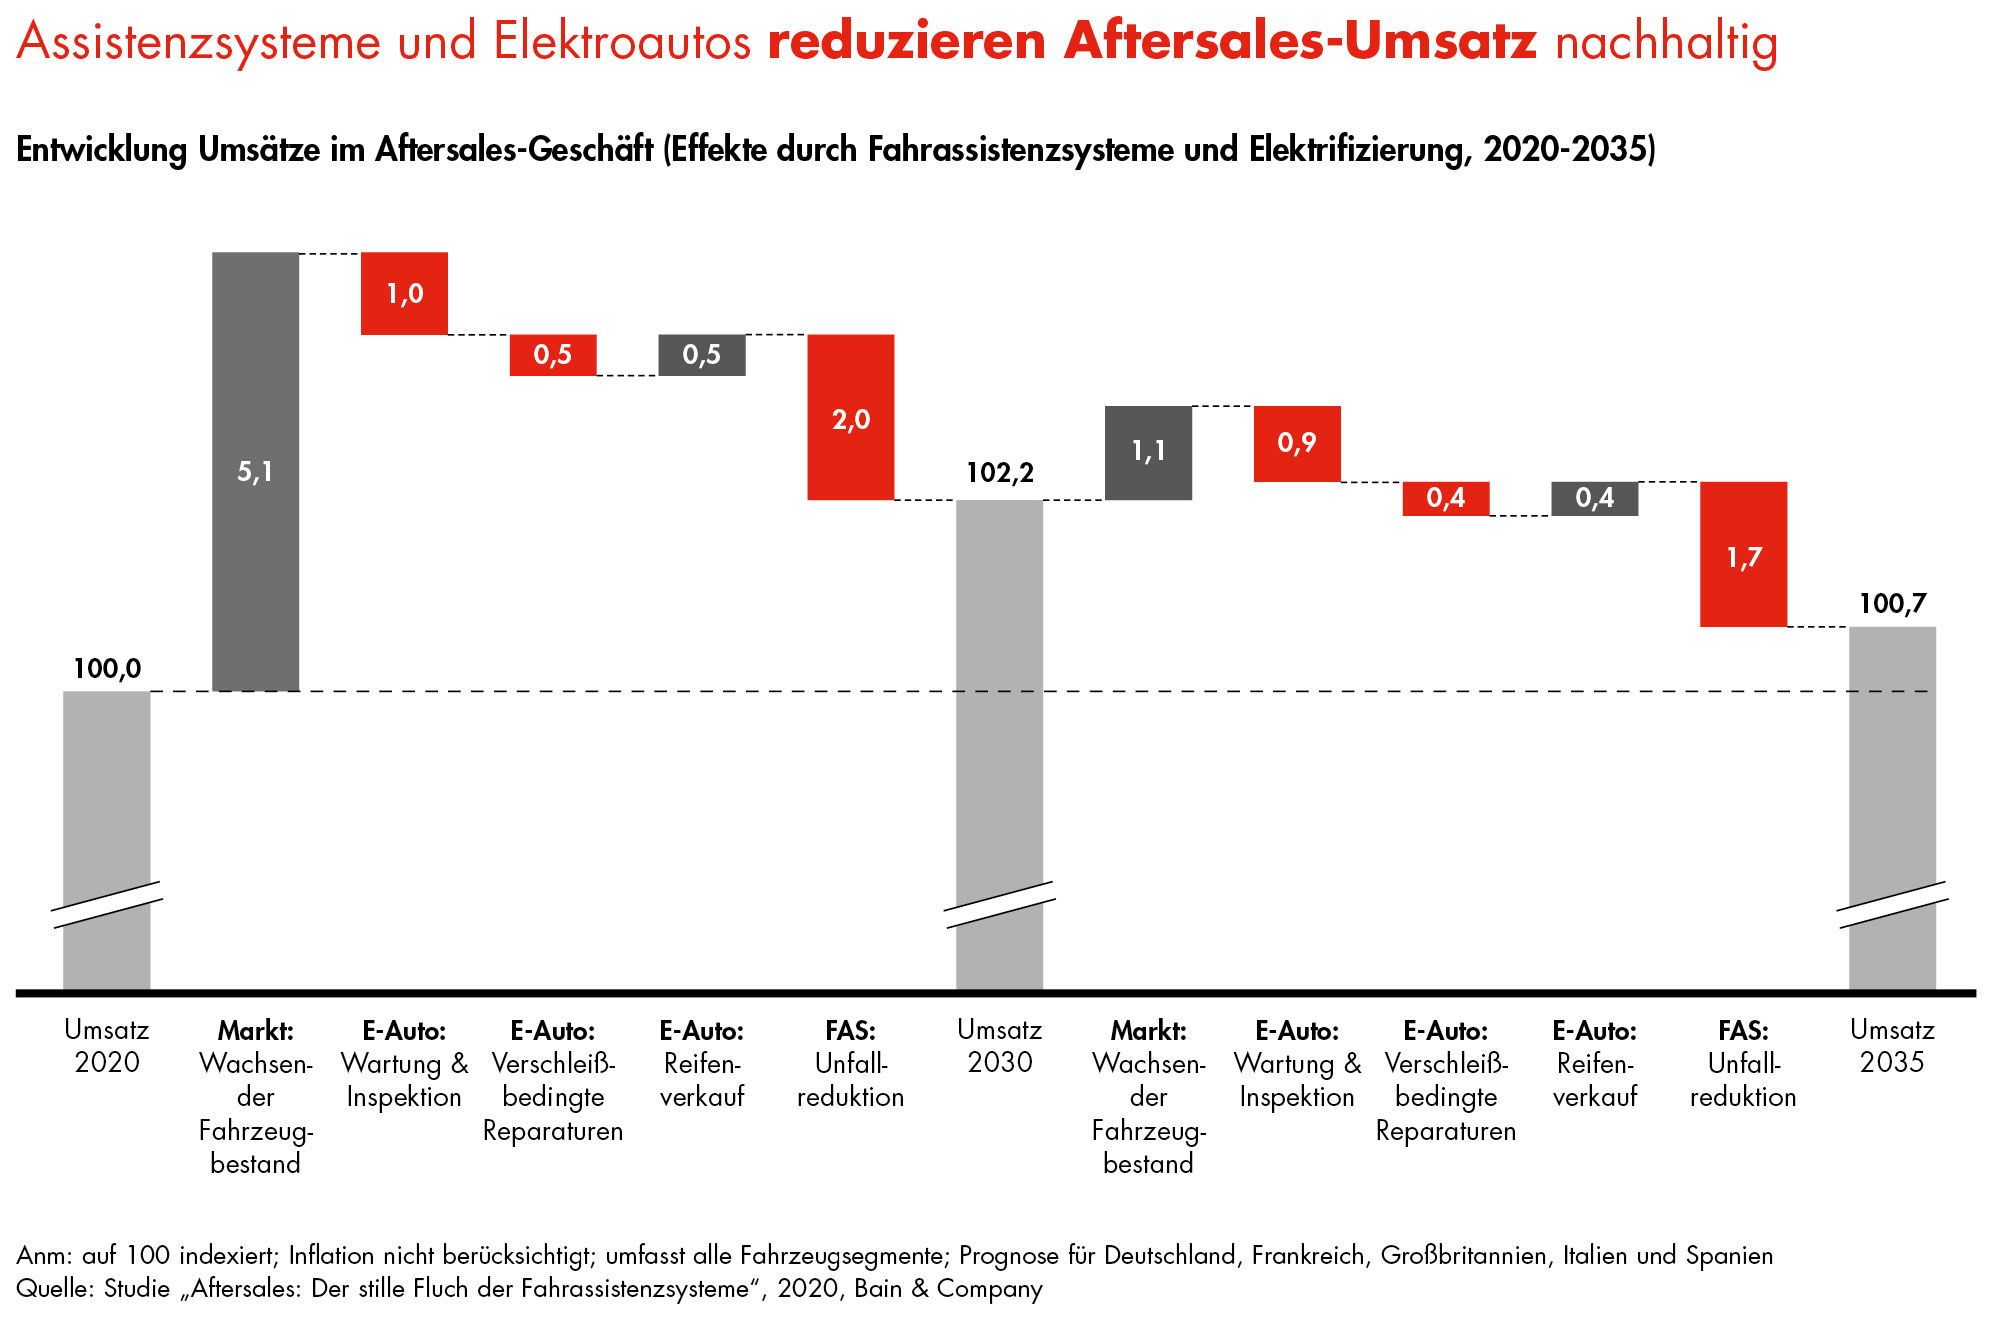 bain-auto-aftersales-2035